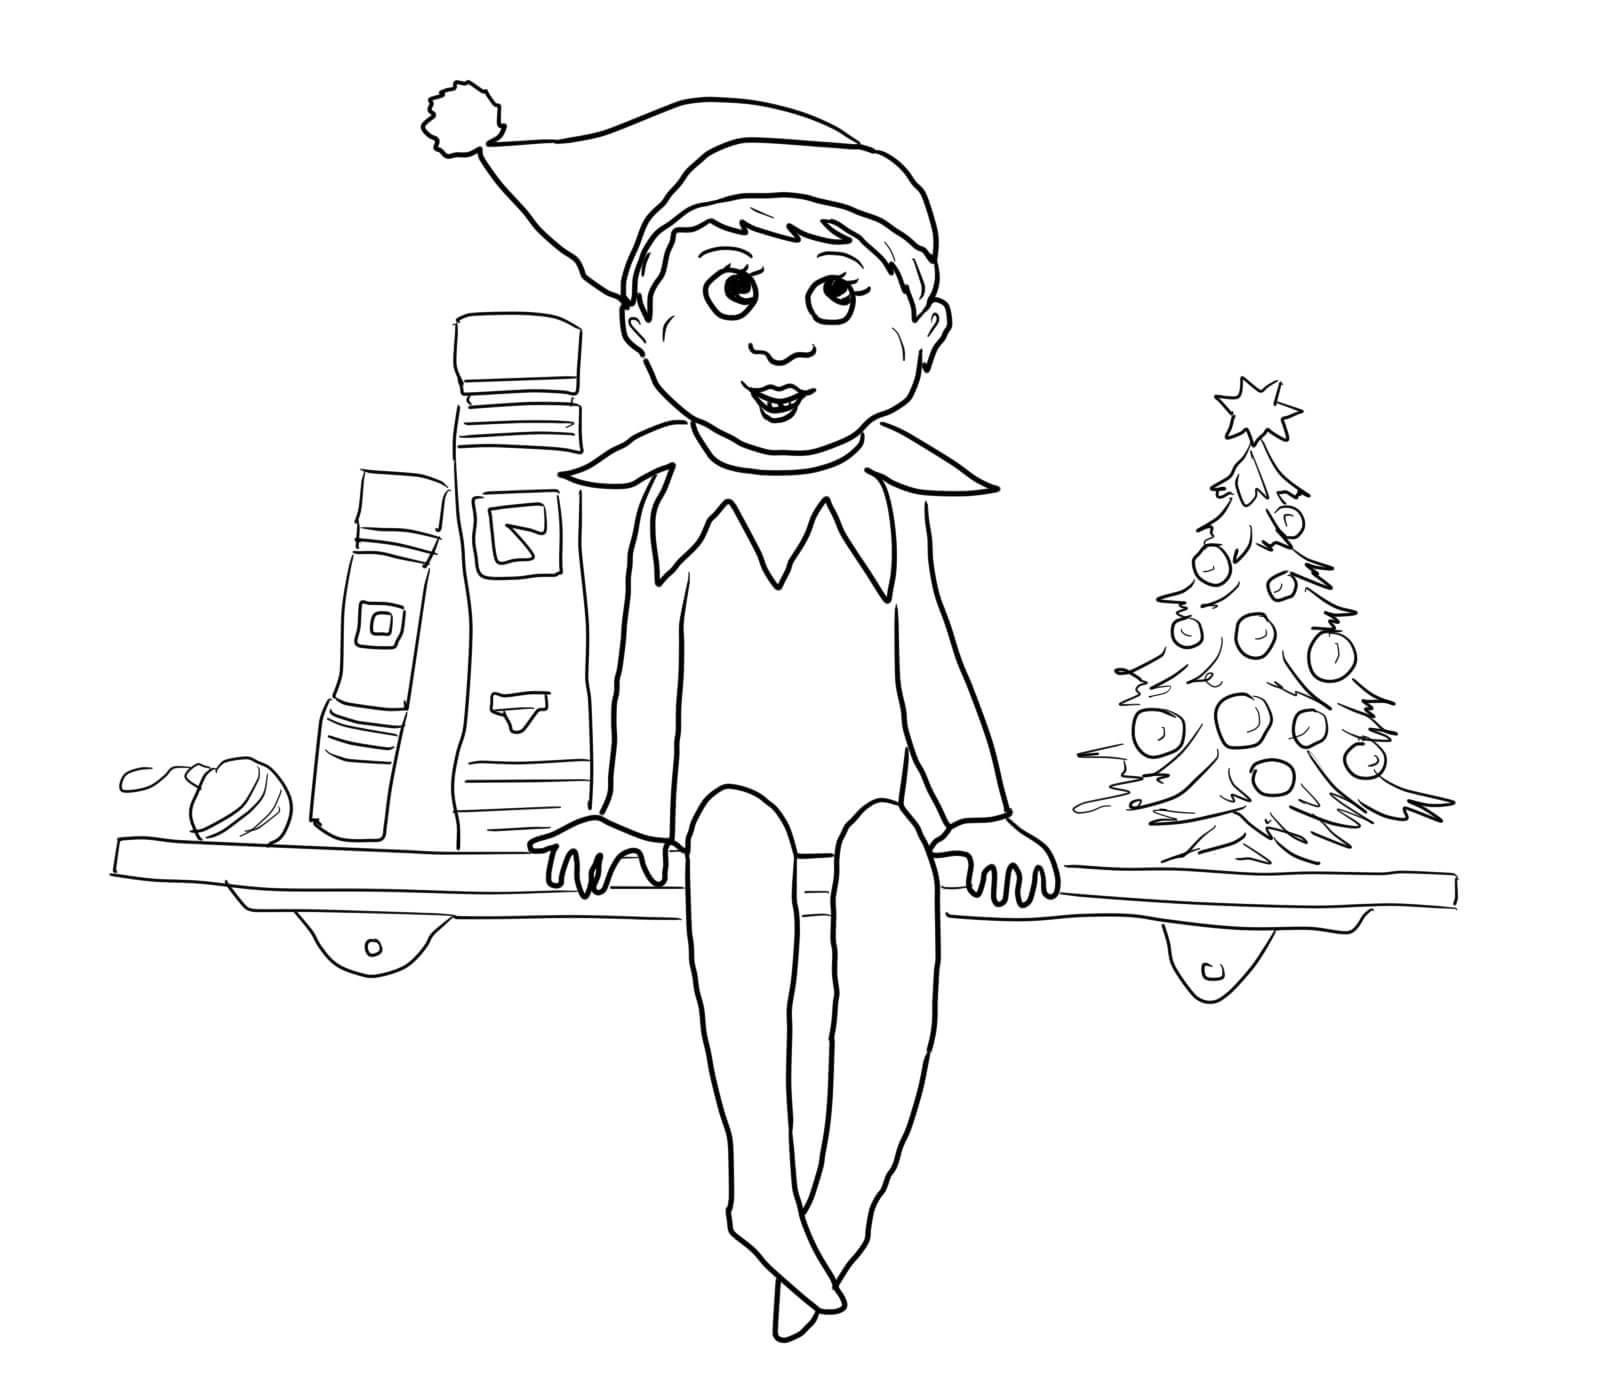 Elf on the Shelf Coloring Sheets (With images) Coloring